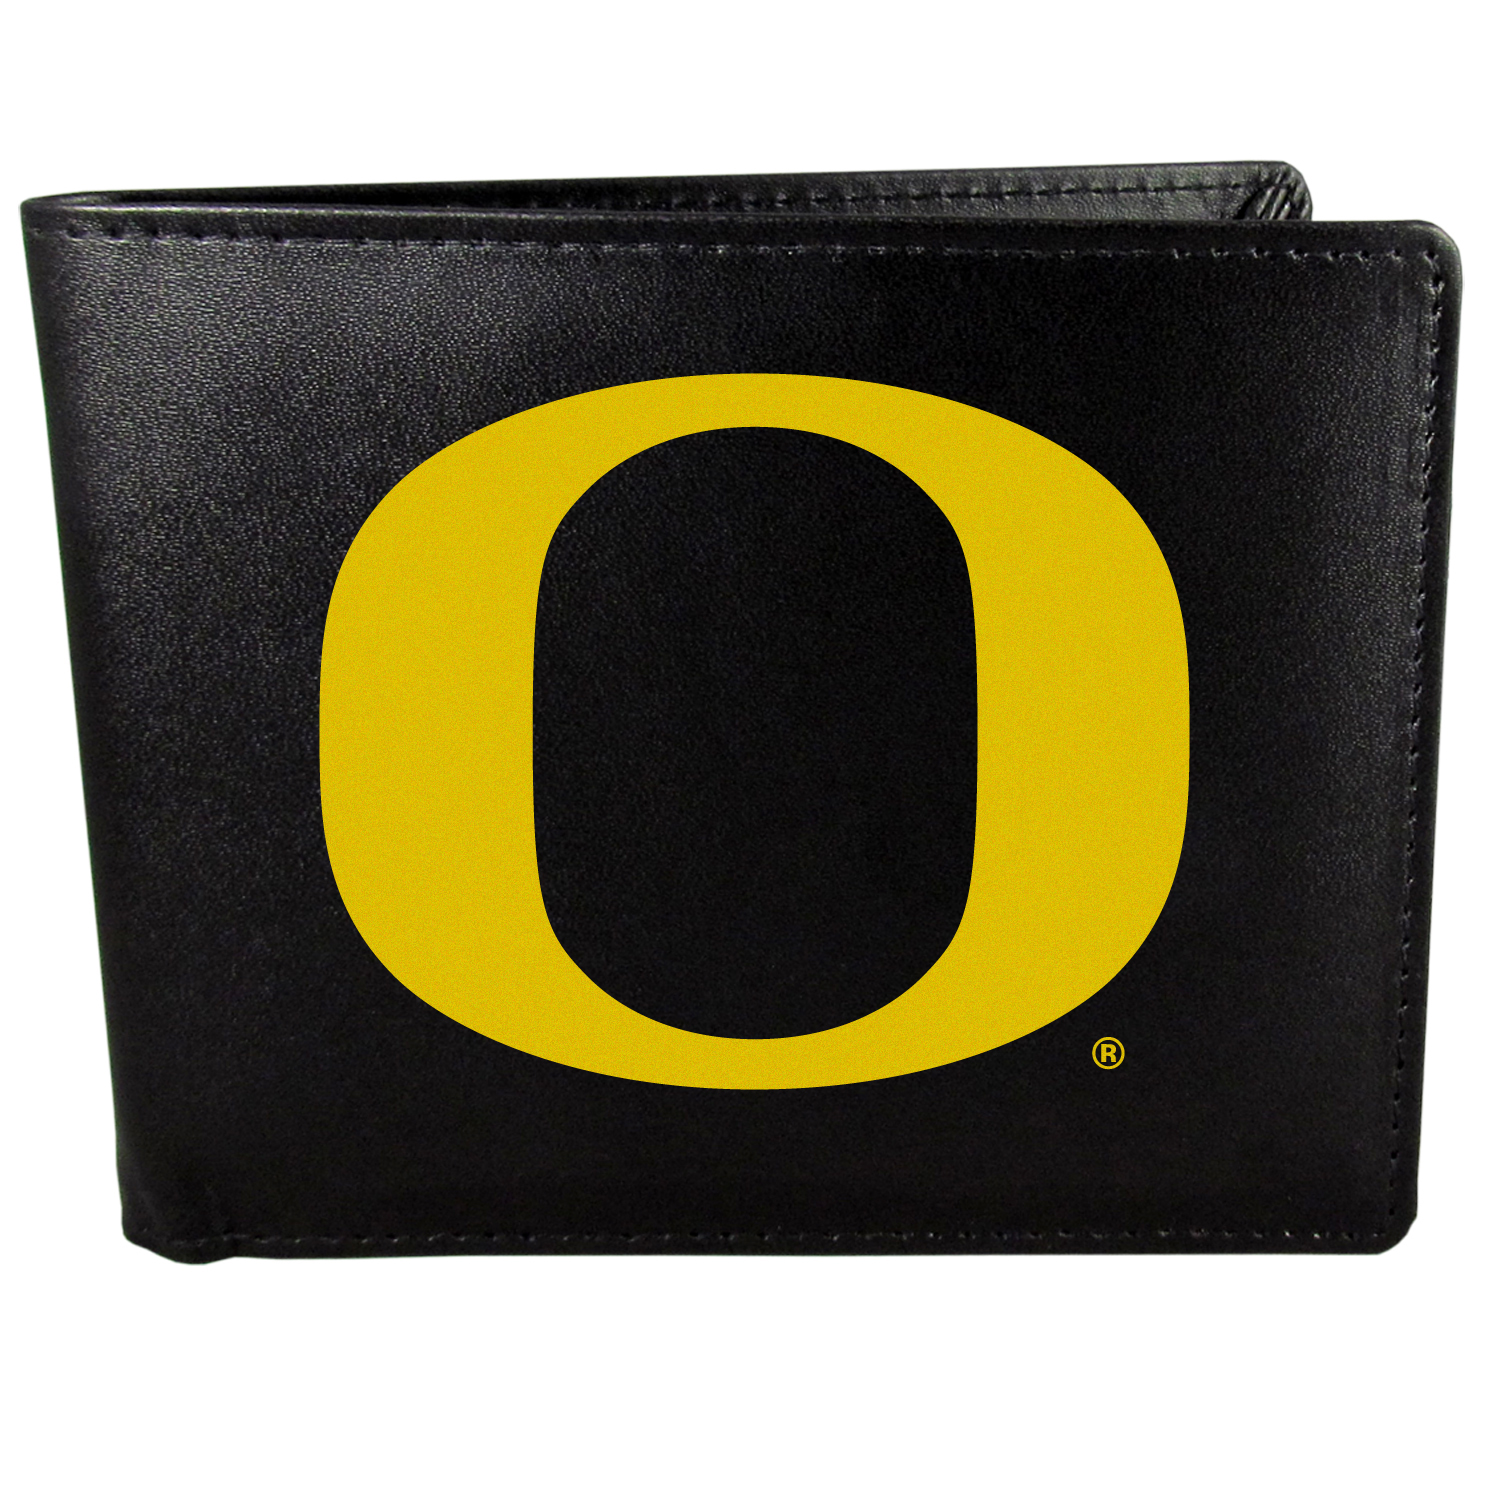 Oregon Ducks Bi-fold Wallet Large Logo - Sports fans do not have to sacrifice style with this classic bi-fold wallet that sports the Oregon Ducks extra large logo. This men's fashion accessory has a leather grain look and expert craftmanship for a quality wallet at a great price. The wallet features inner credit card slots, windowed ID slot and a large billfold pocket. The front of the wallet features a printed team logo.